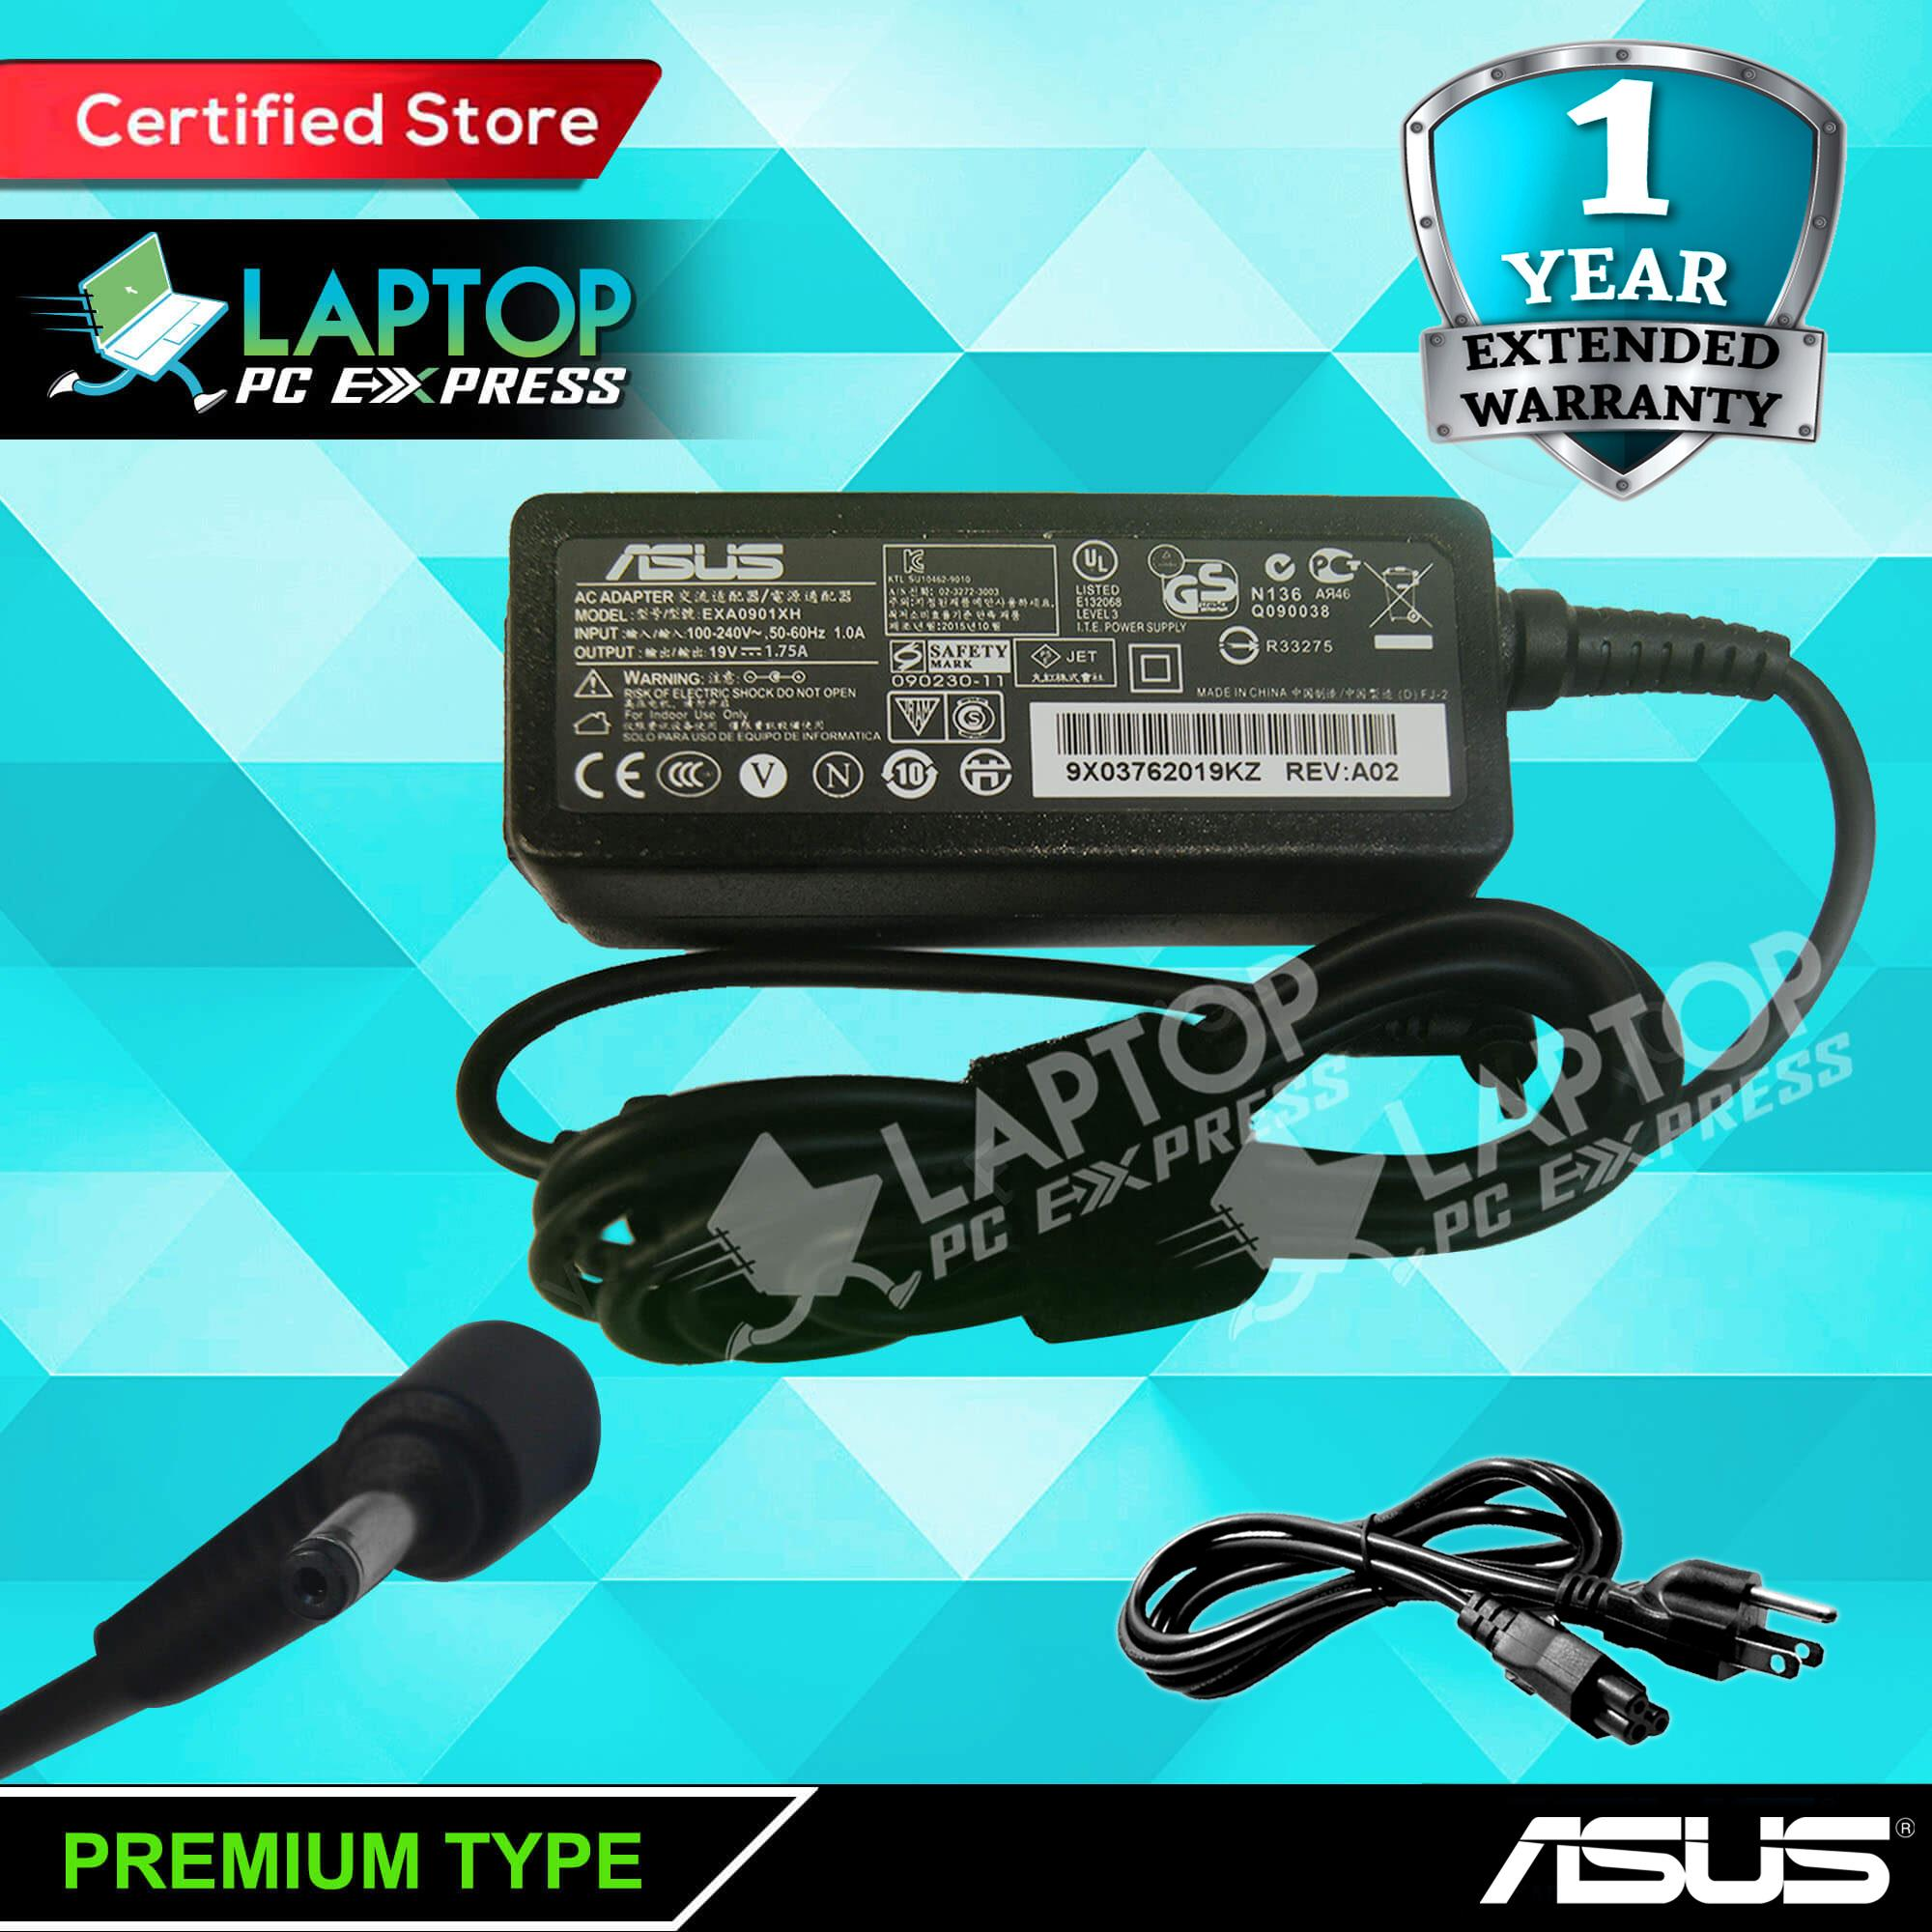 ASUS X450VE USB Charger Plus Windows 8 X64 Treiber